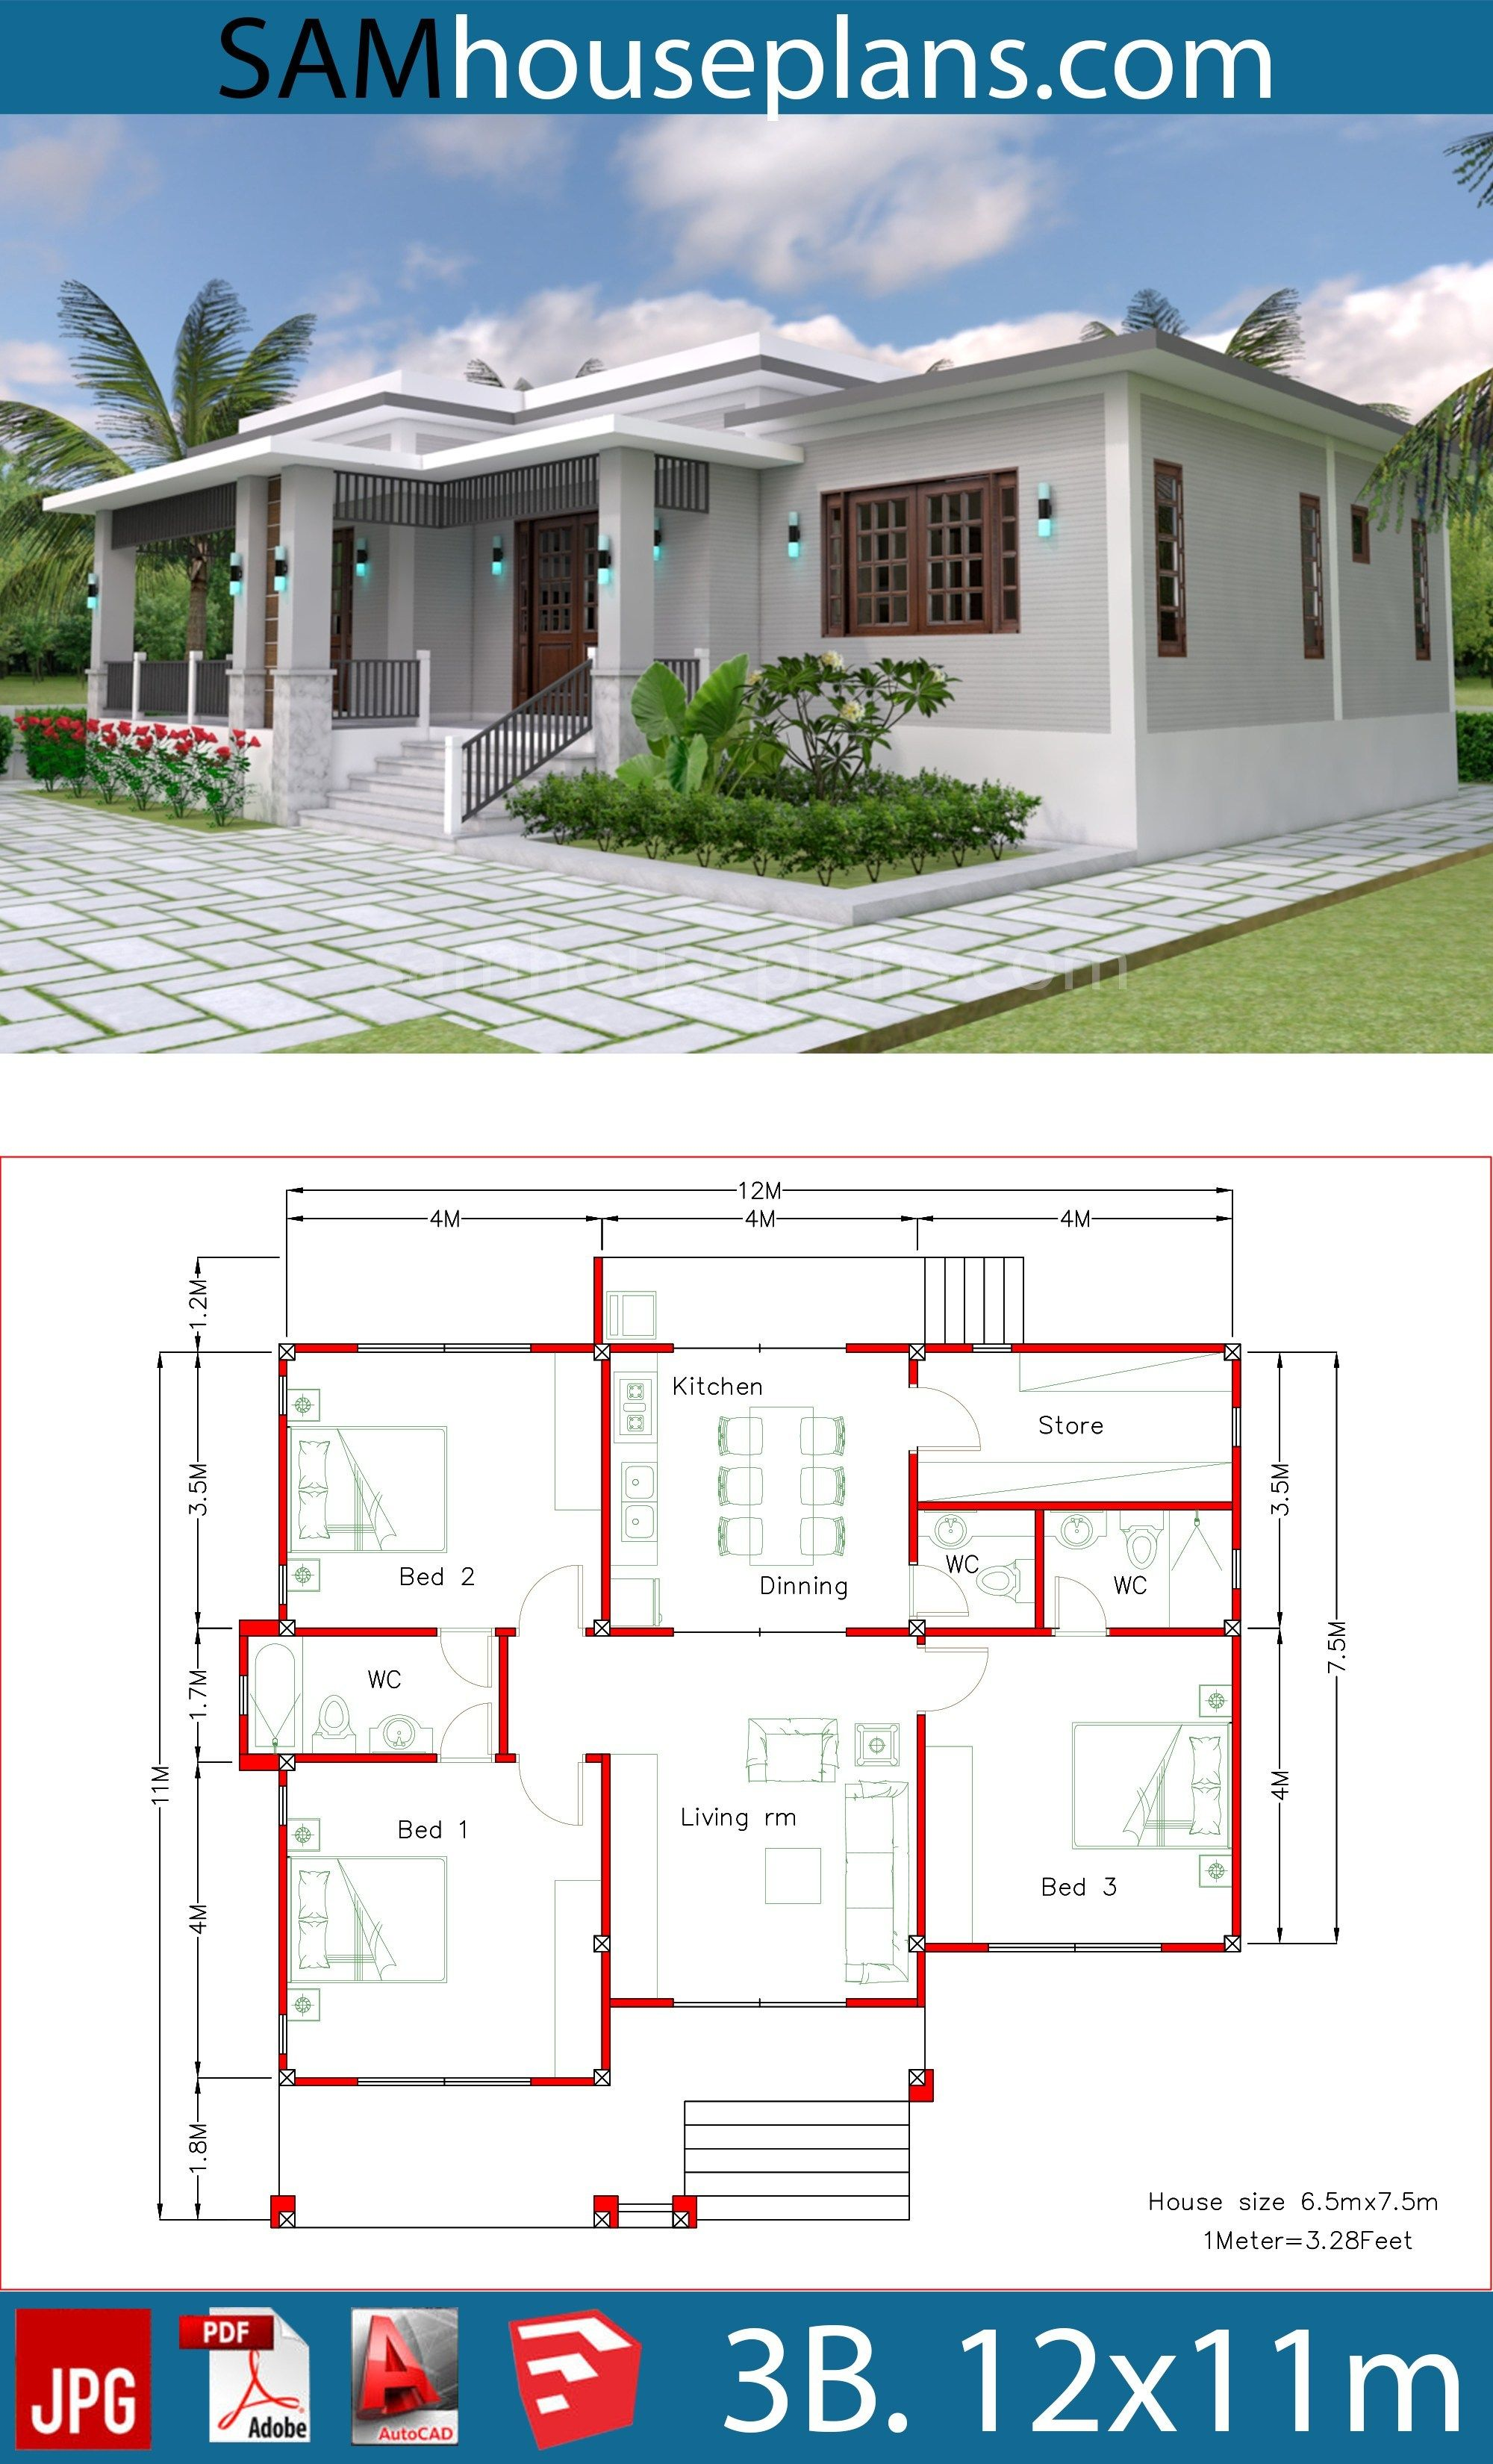 House Plans 12x11m With 3 Bedrooms Sam House Plans House Plan Gallery Small House Design Plans Affordable House Plans